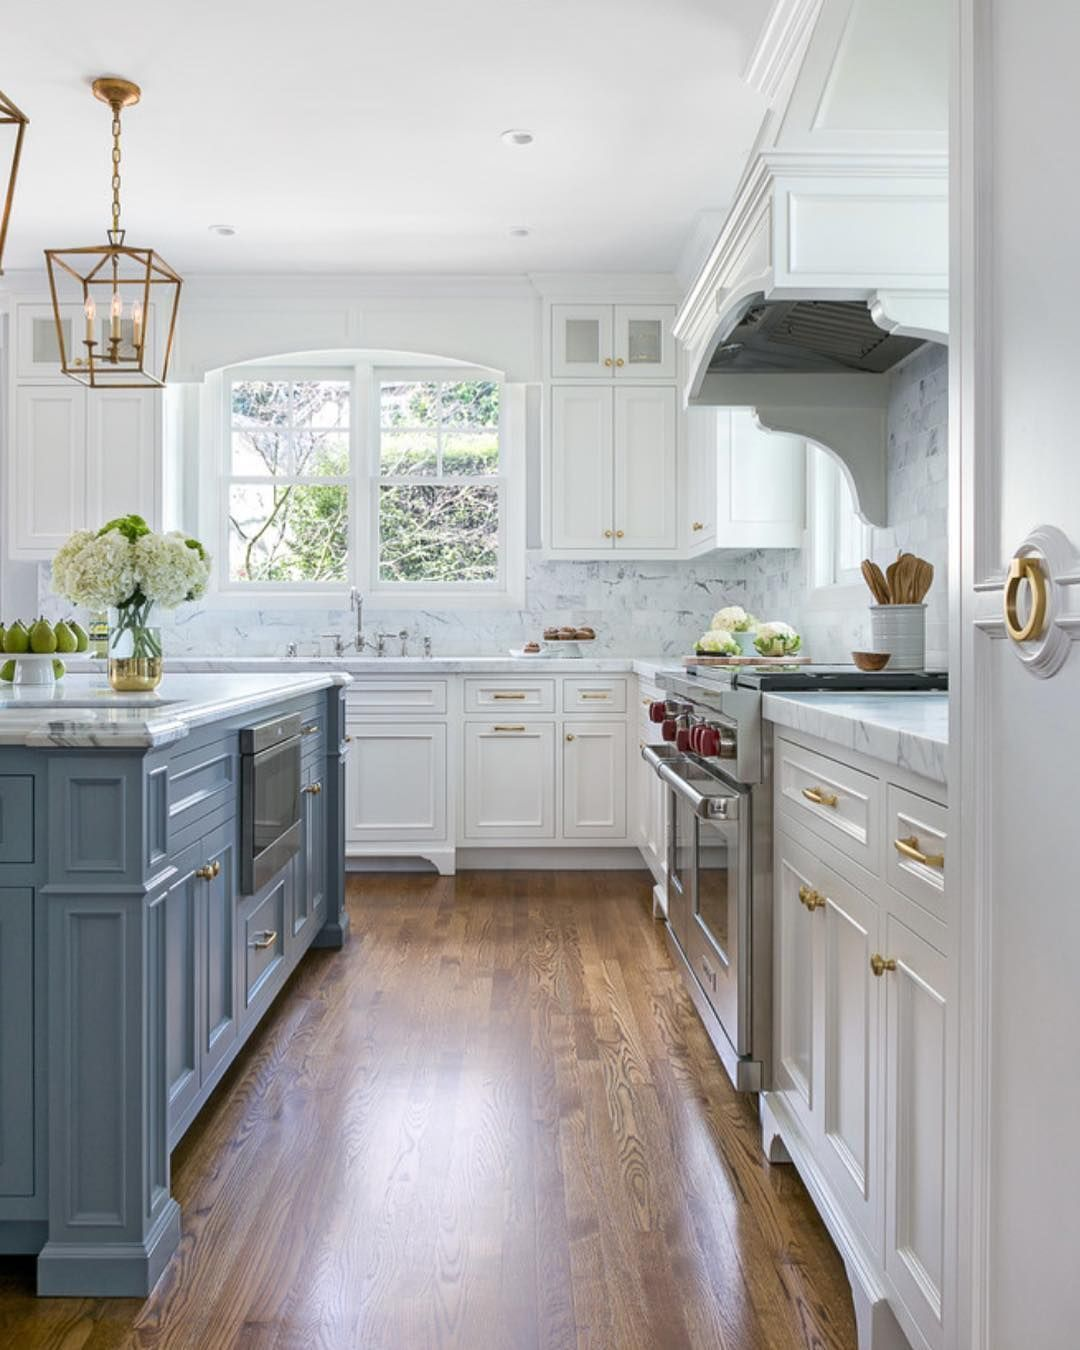 10+ Amazing Kitchen Remodel Layout Open Concept Ideas ...